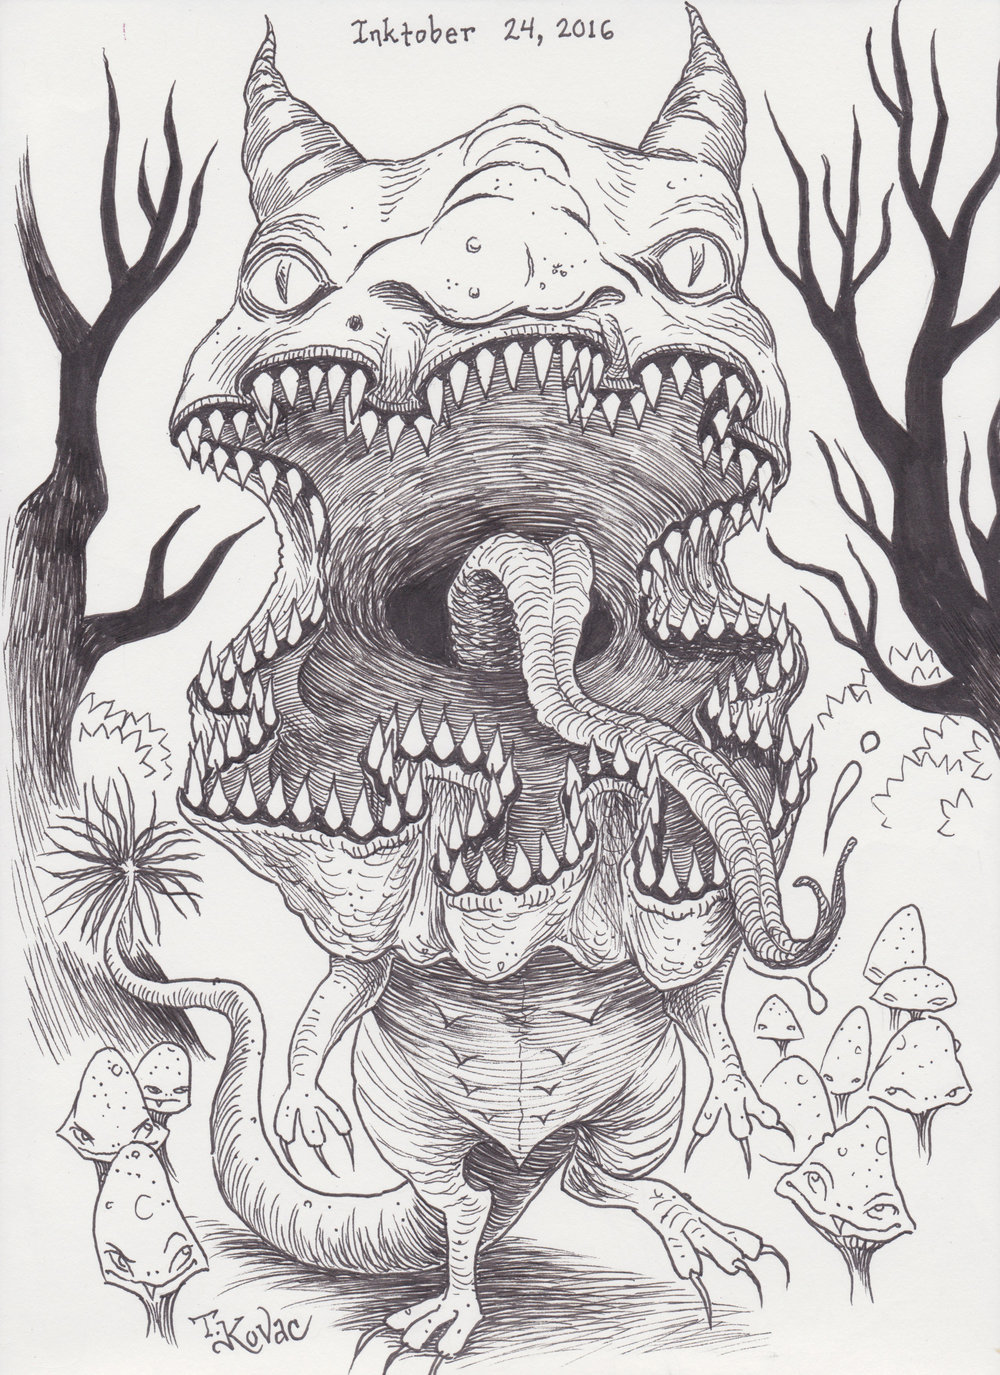 Inktober 24, 2016 (Monster Mouth)